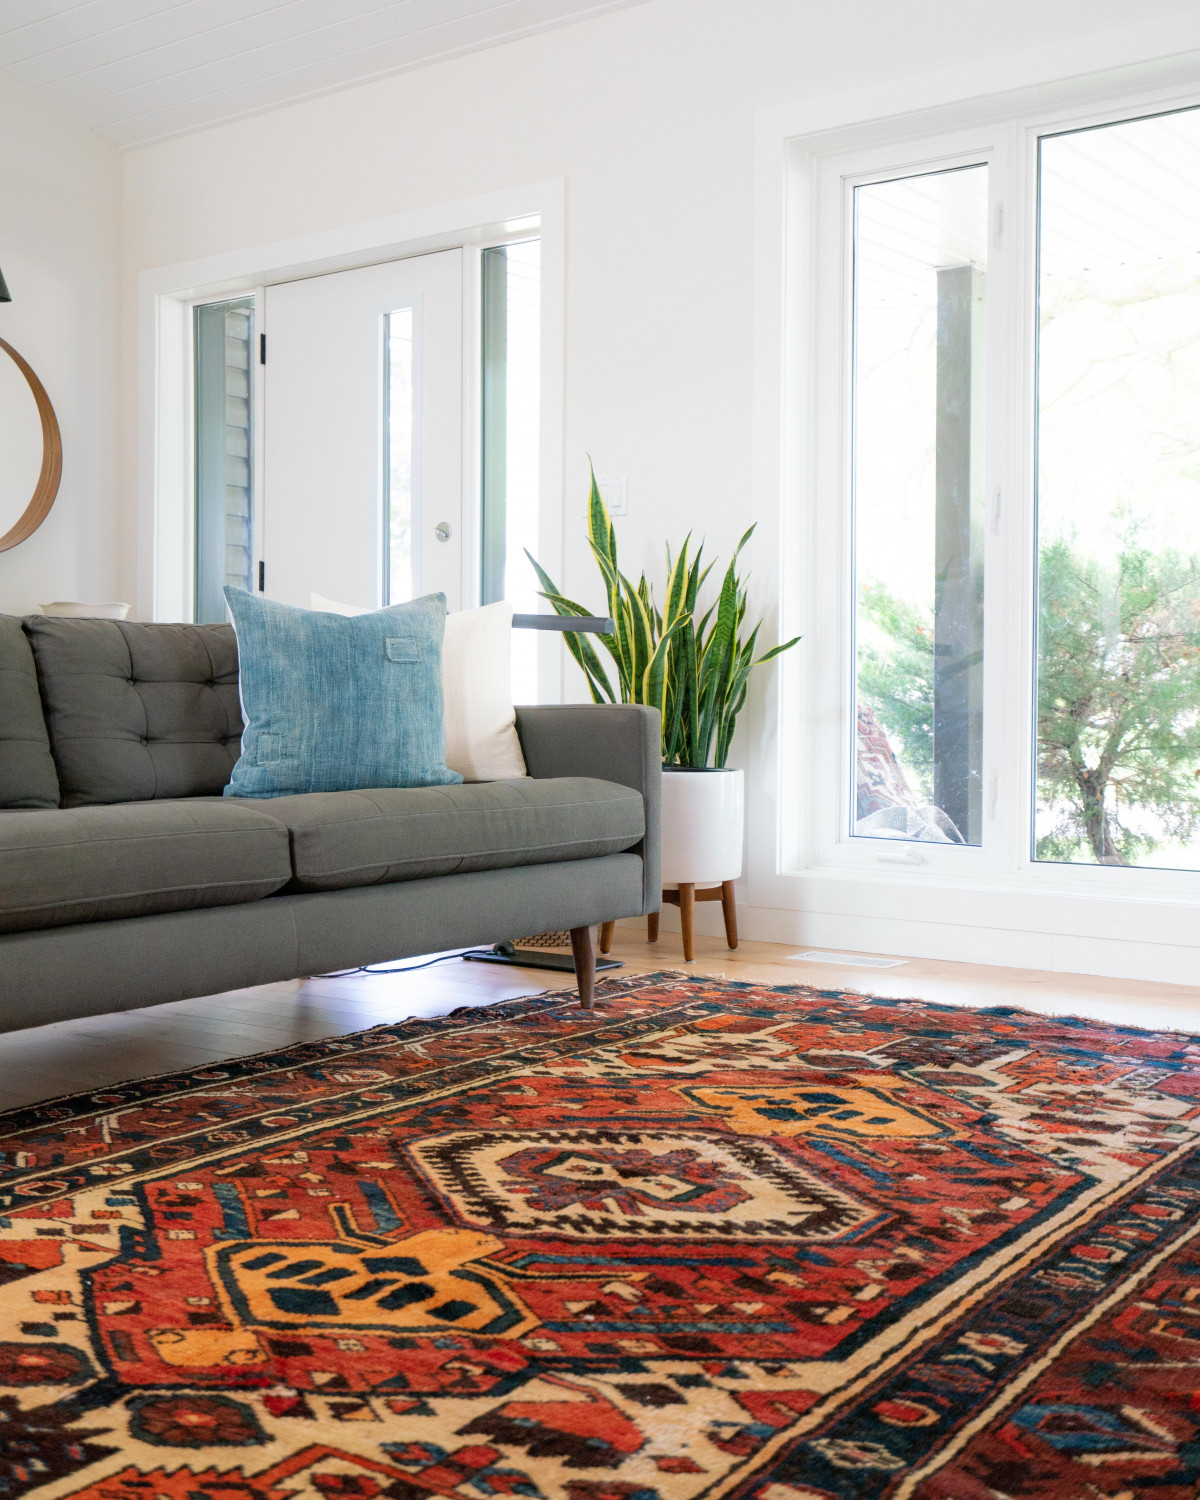 Carpet upholstery panel care during monsoon